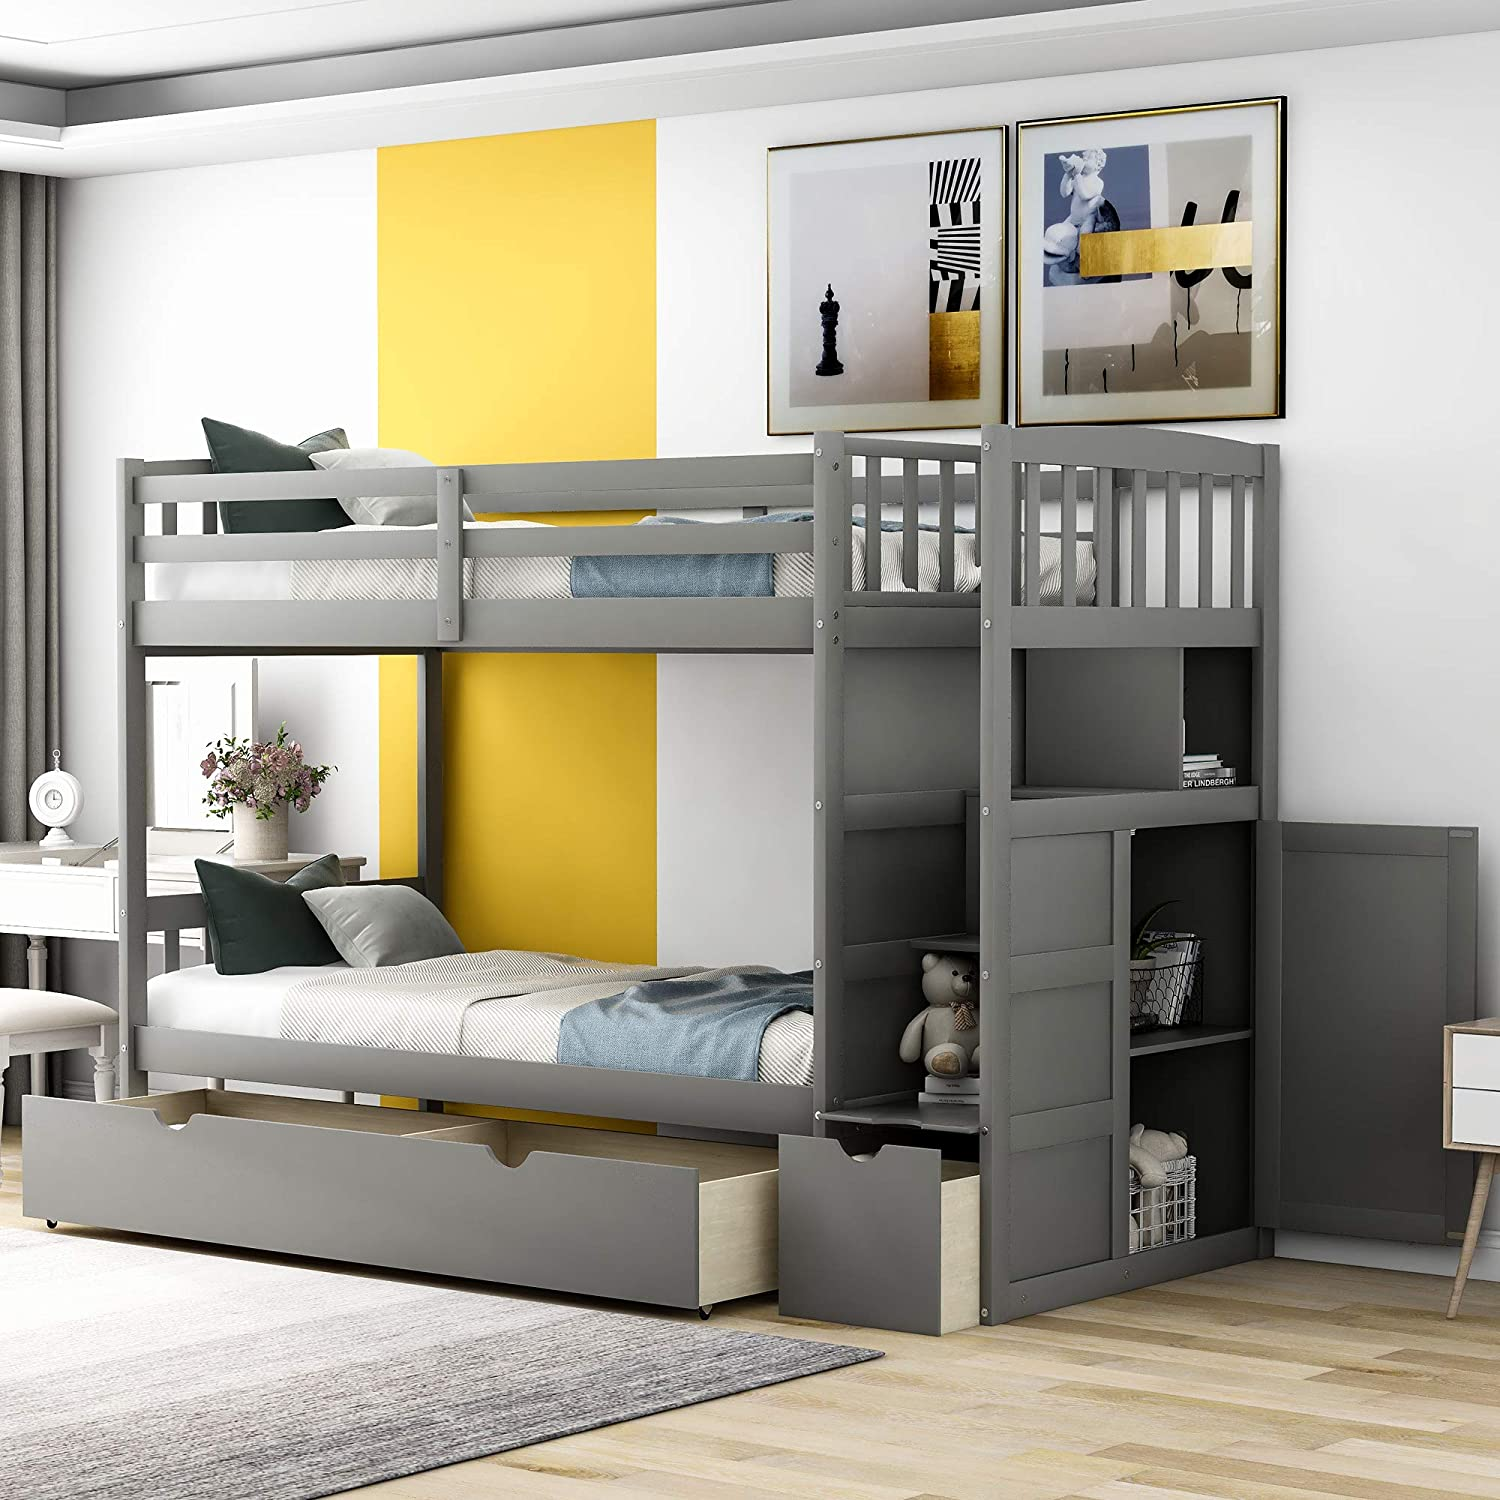 Buy Twin Over Full Bunk Bed Twin Bunk Beds For Kids Bed Frame With Convertible Bottom Bed Storage Shelves And Drawers Gray Online In Turkey B08blbtyvx